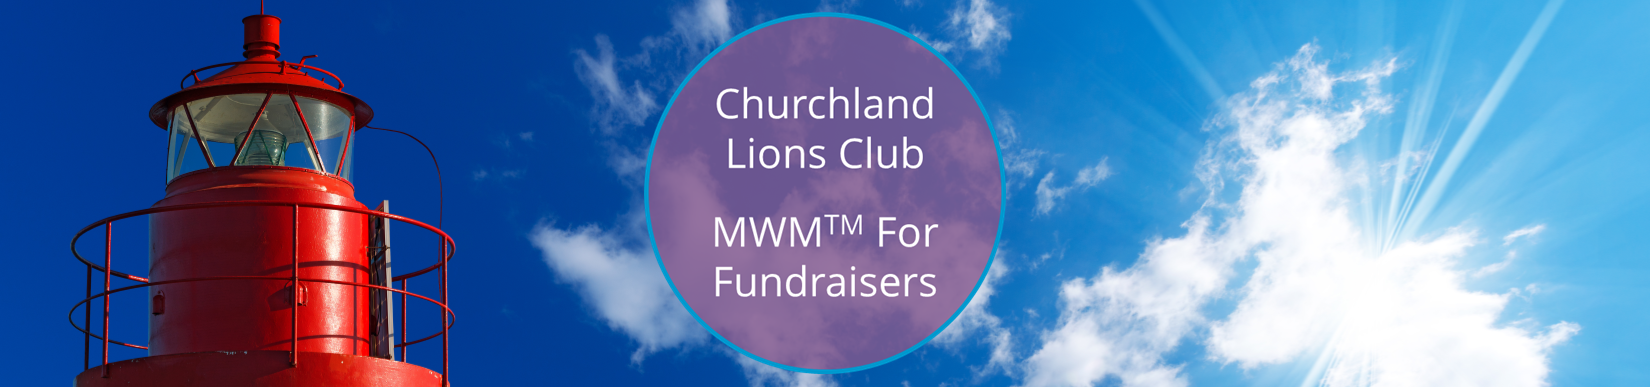 20170327-header-mwm-tk-churchland-lions